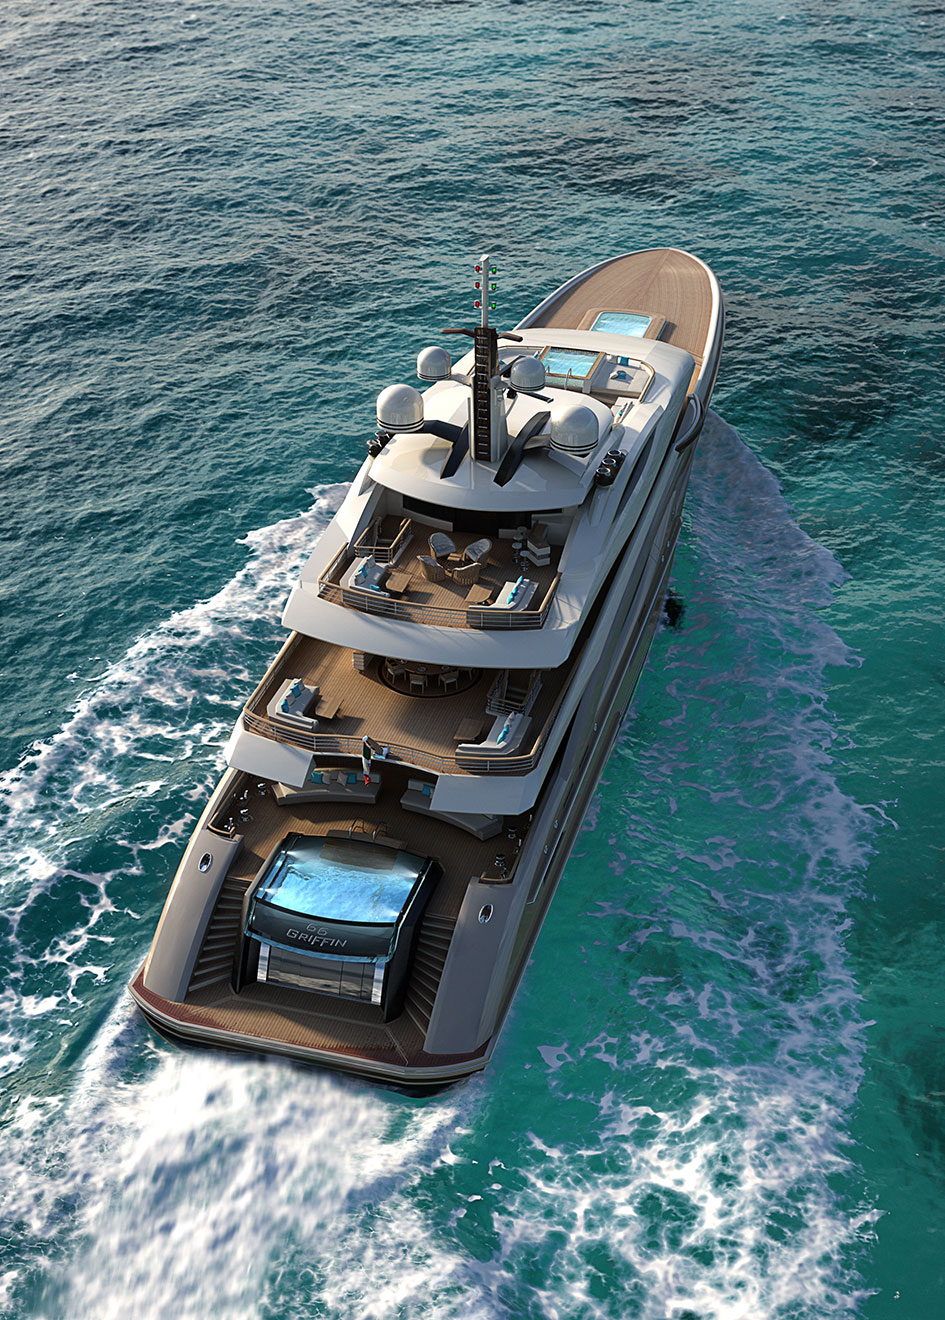 aerial-view-of-the-griffin-66-superyacht-concept-by-fincantieri-and-christopher-seymour-designs